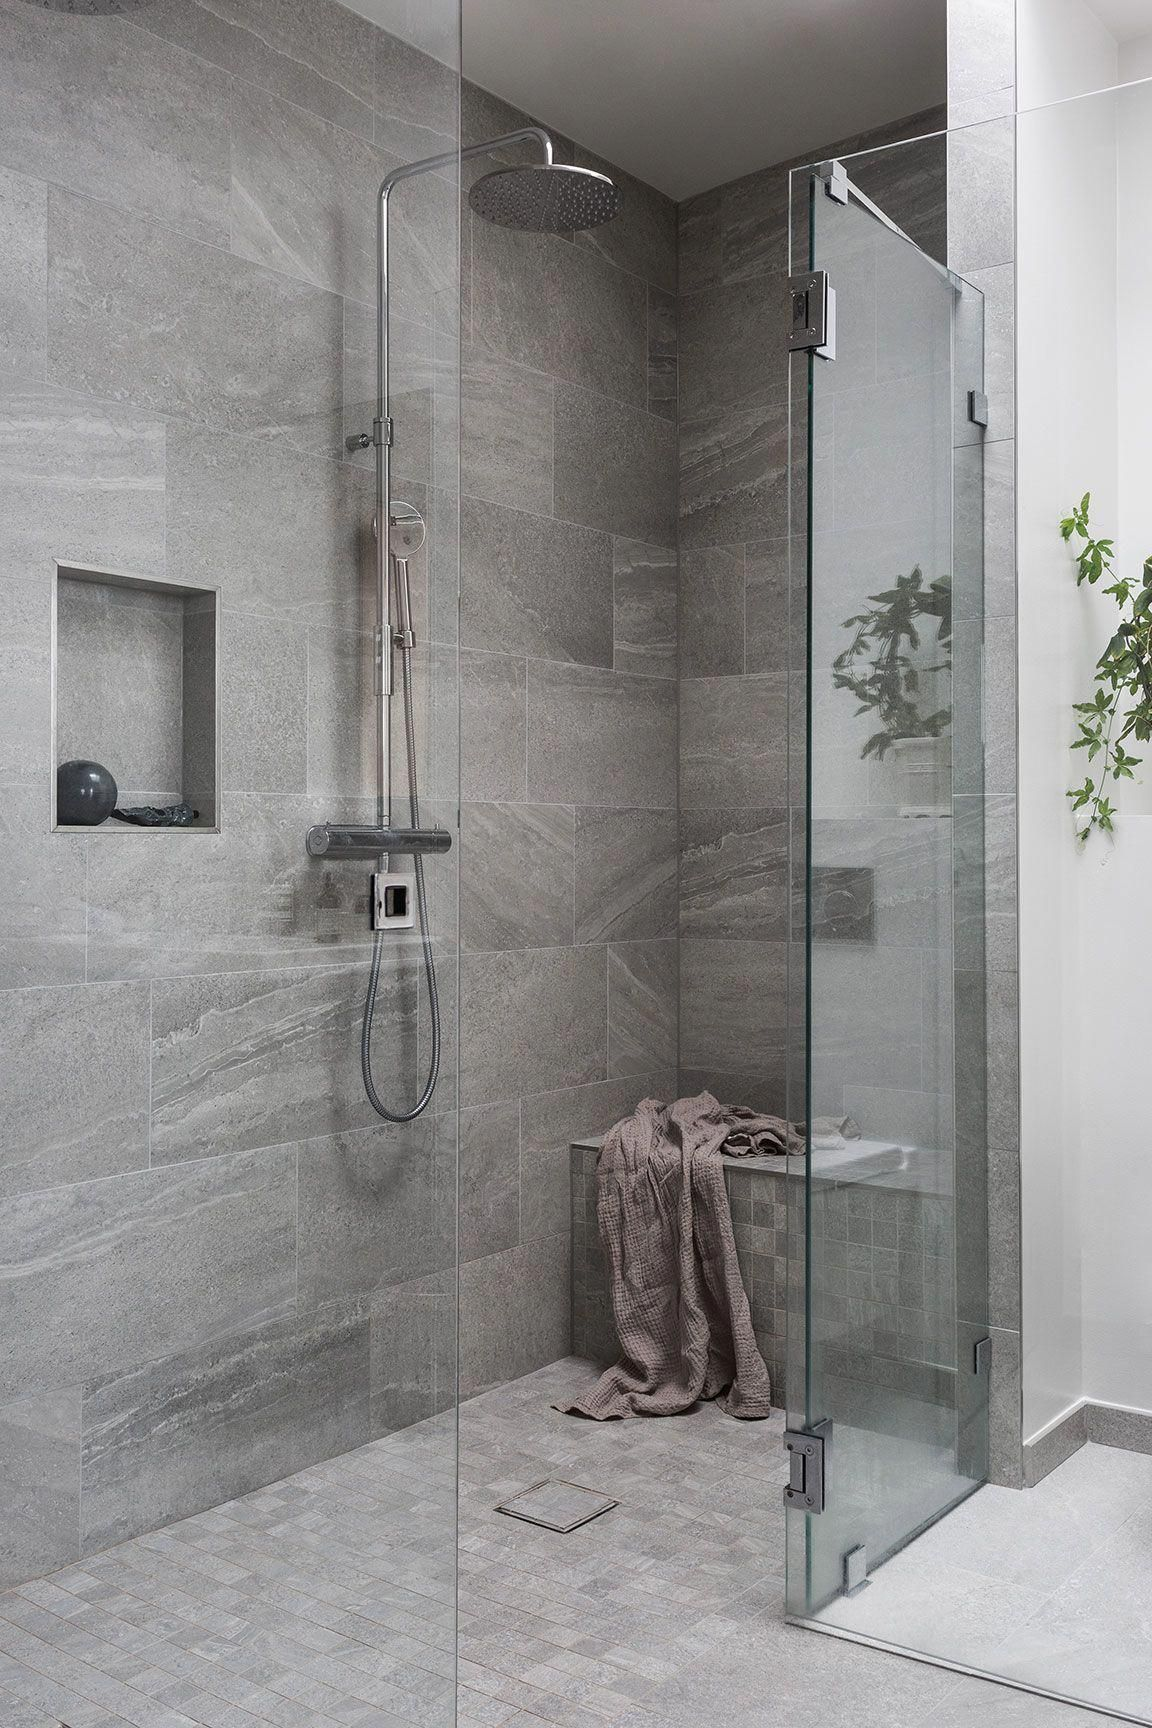 51 stunning shower tile design ideas to remodel your